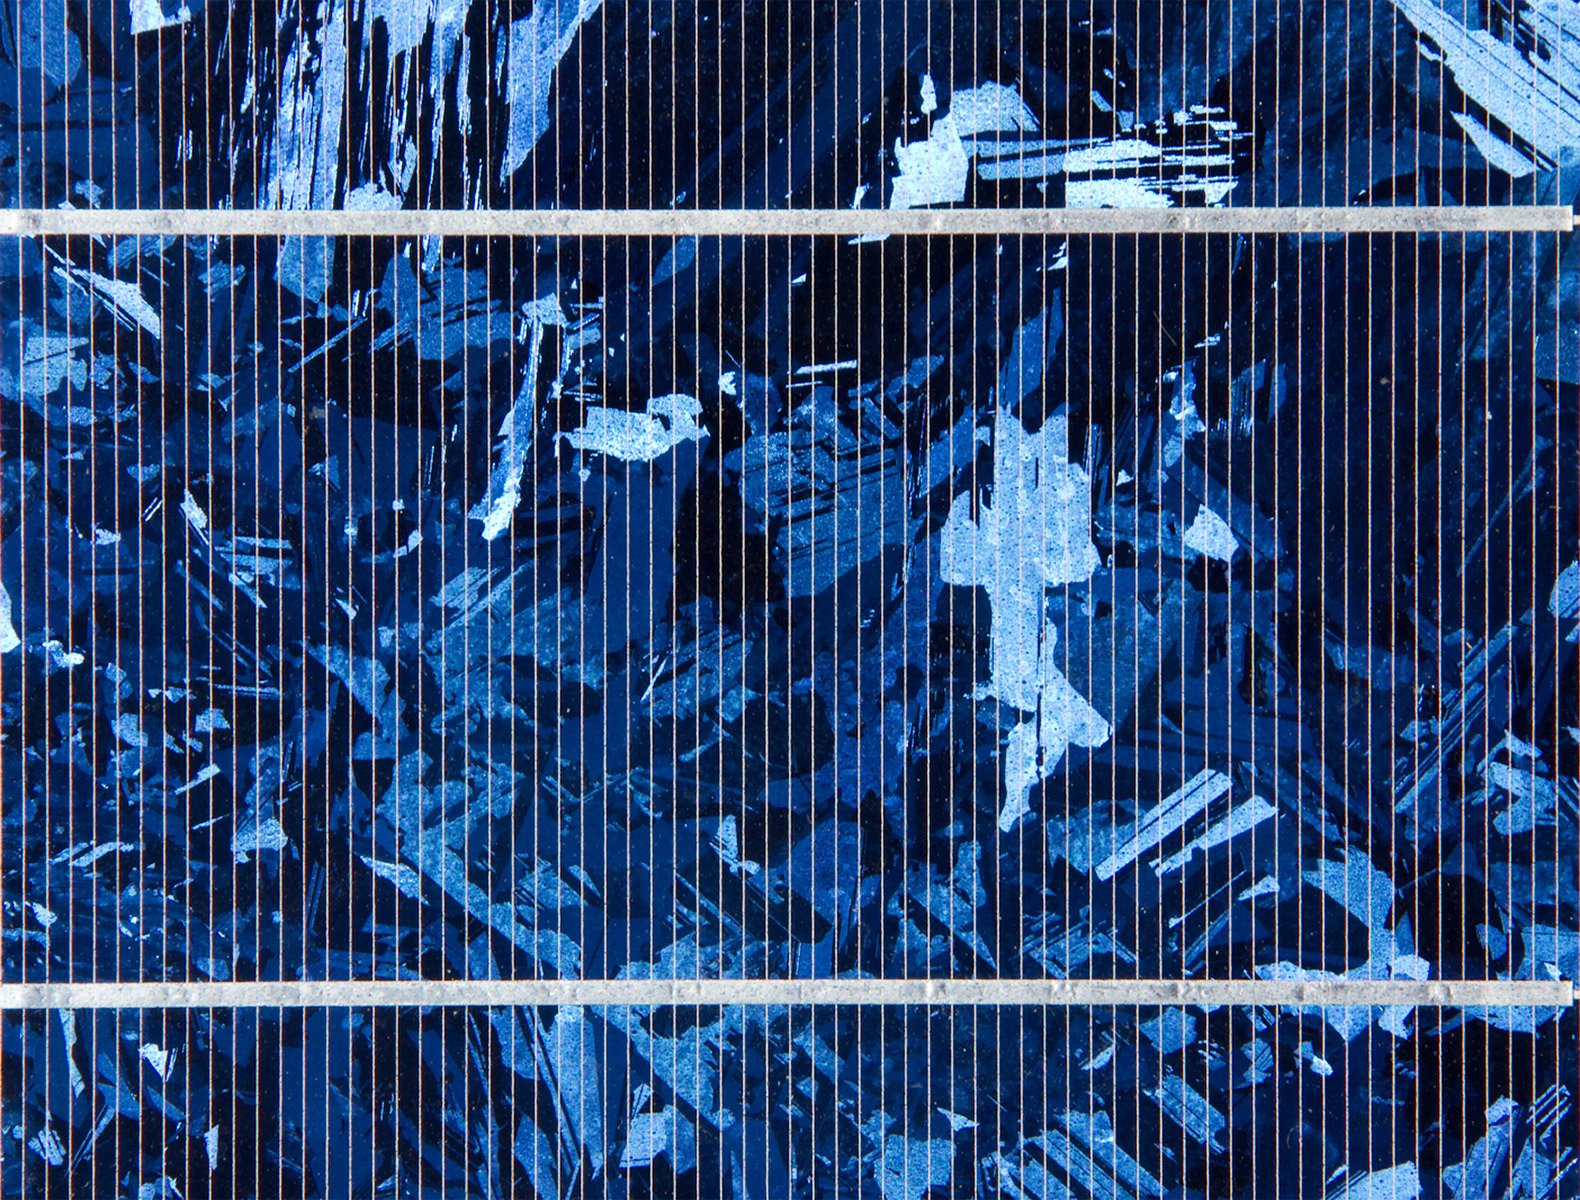 New graphene solar panels turn rain into clean energy